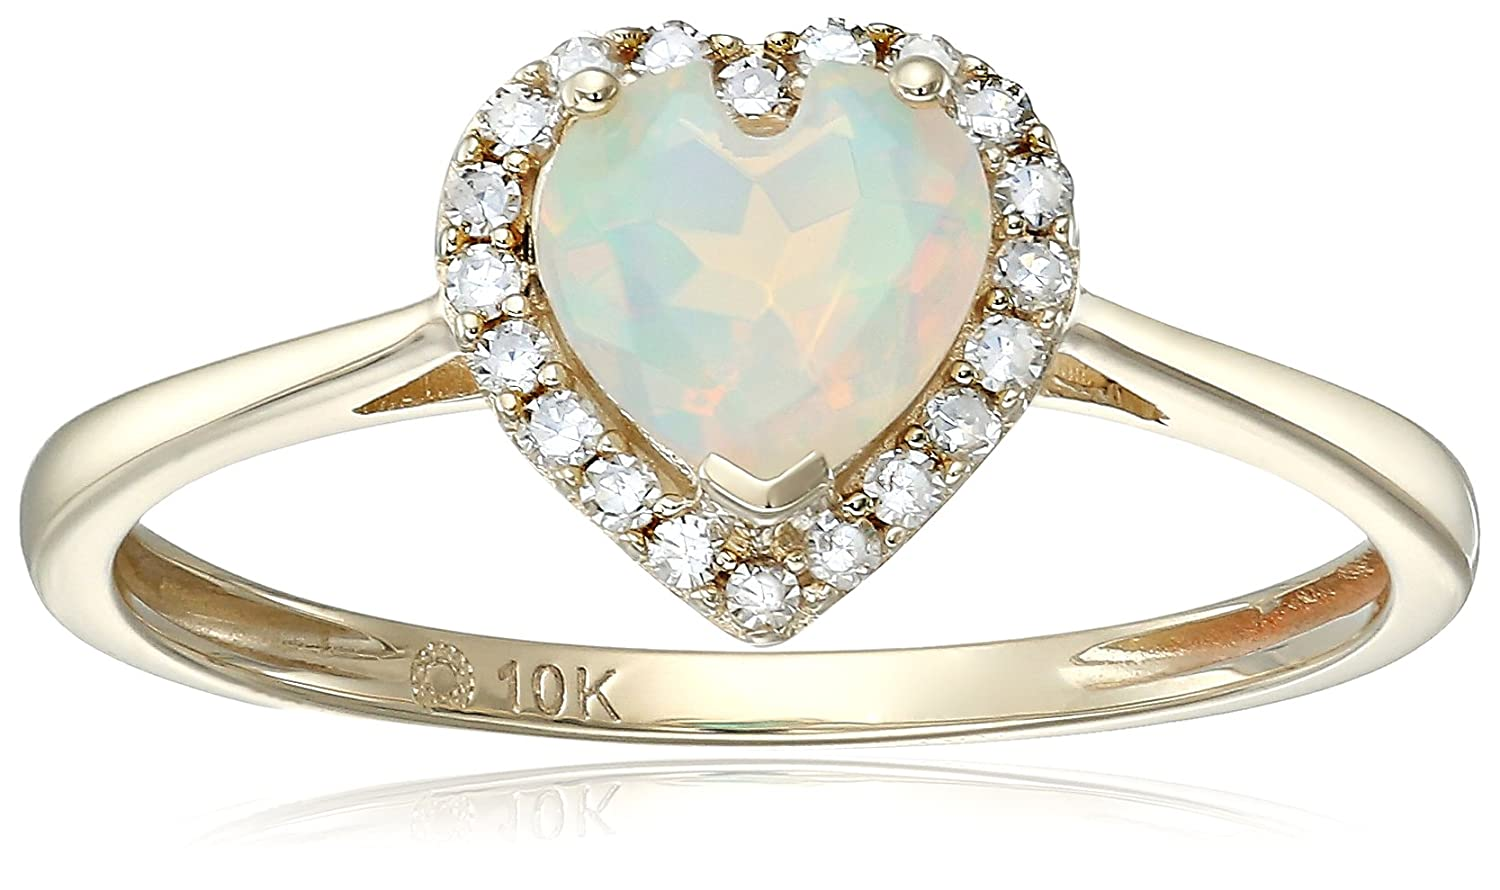 10k Yellow Gold Ethiopian Opal And Diamond Solitaire Heart Halo Engagement Ring (1/10cttw, H-I Color, I1-I2 Clarity), Size 7 R4720YETOP